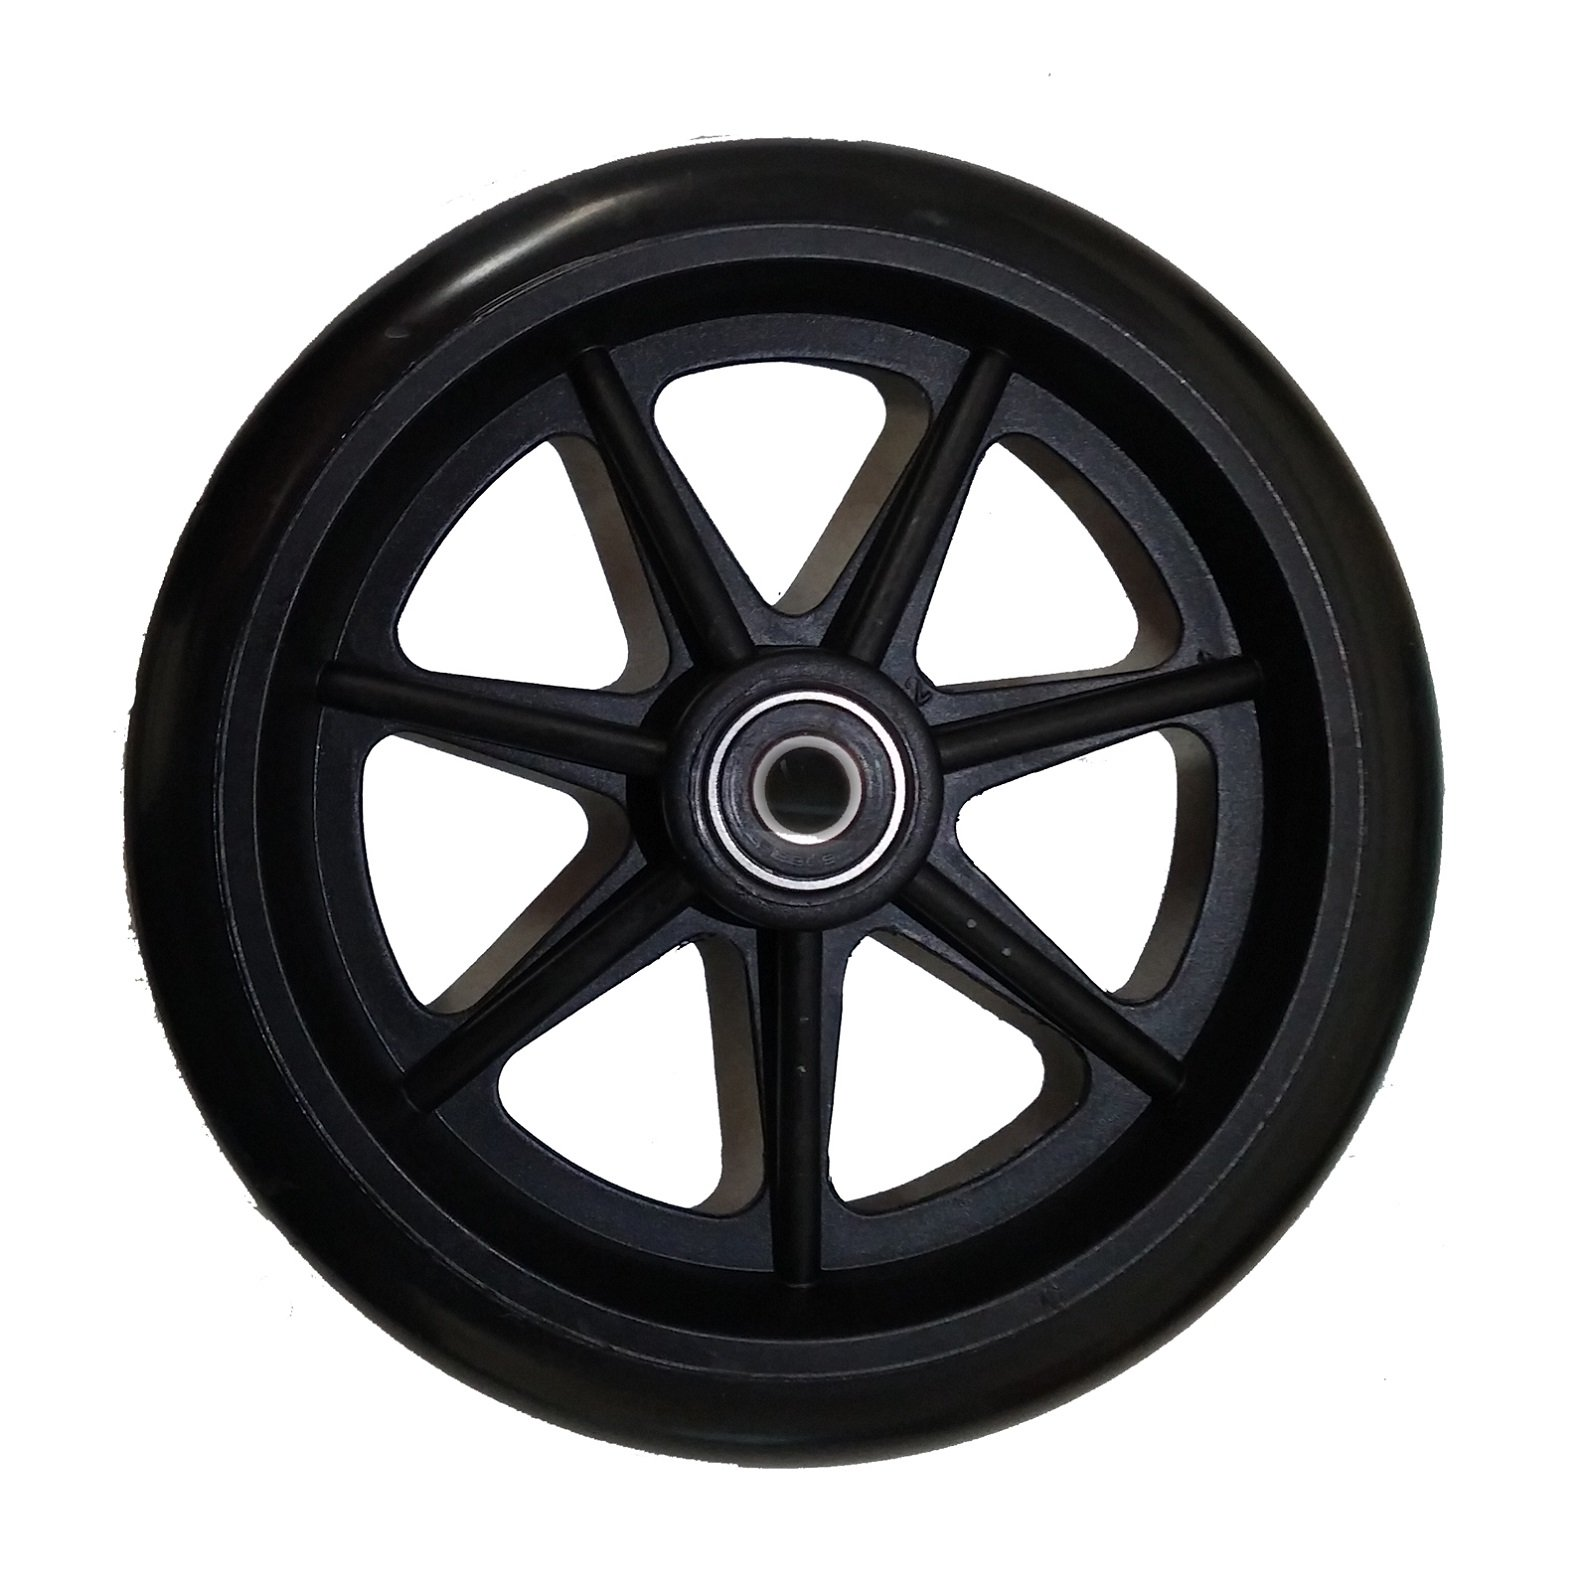 Stander Walker Replacement 6'' Wheels - For the EZ Fold N' Go Walker and Able Life Space Saver Walker, set of 2, Black